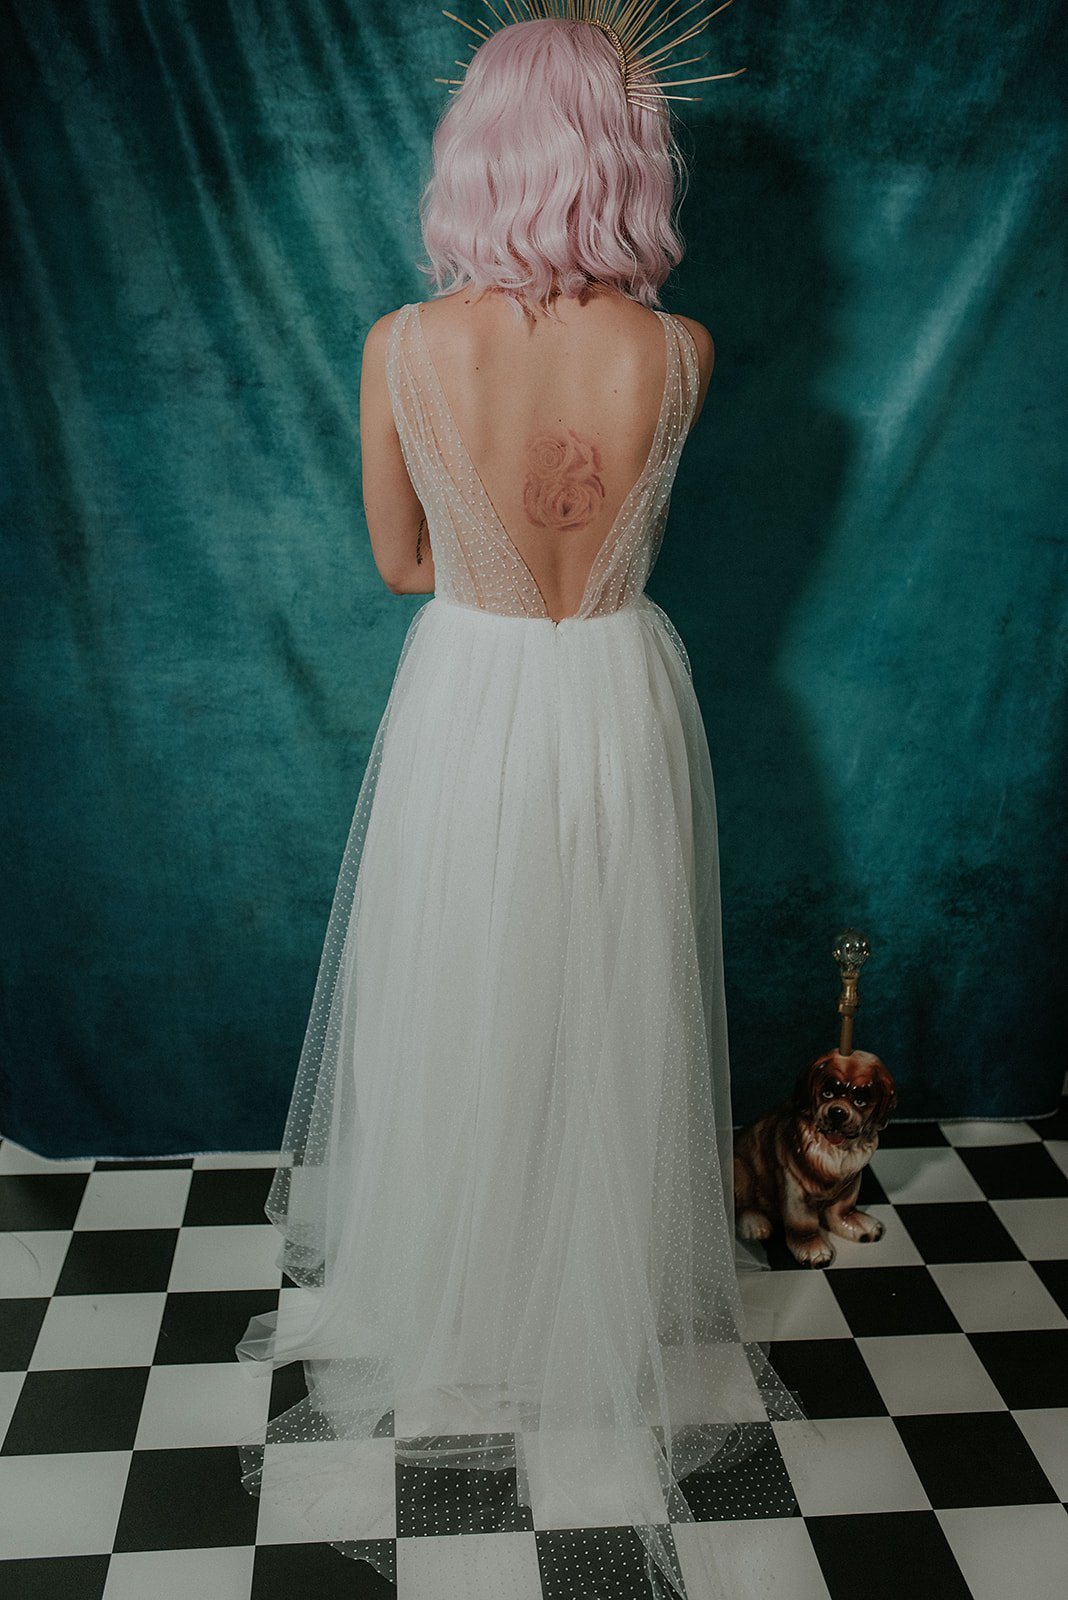 Lucy Cant Dance Cosmic Rodeo Alternative wedding dresses separates Megan Elle Photography 00016.jpg